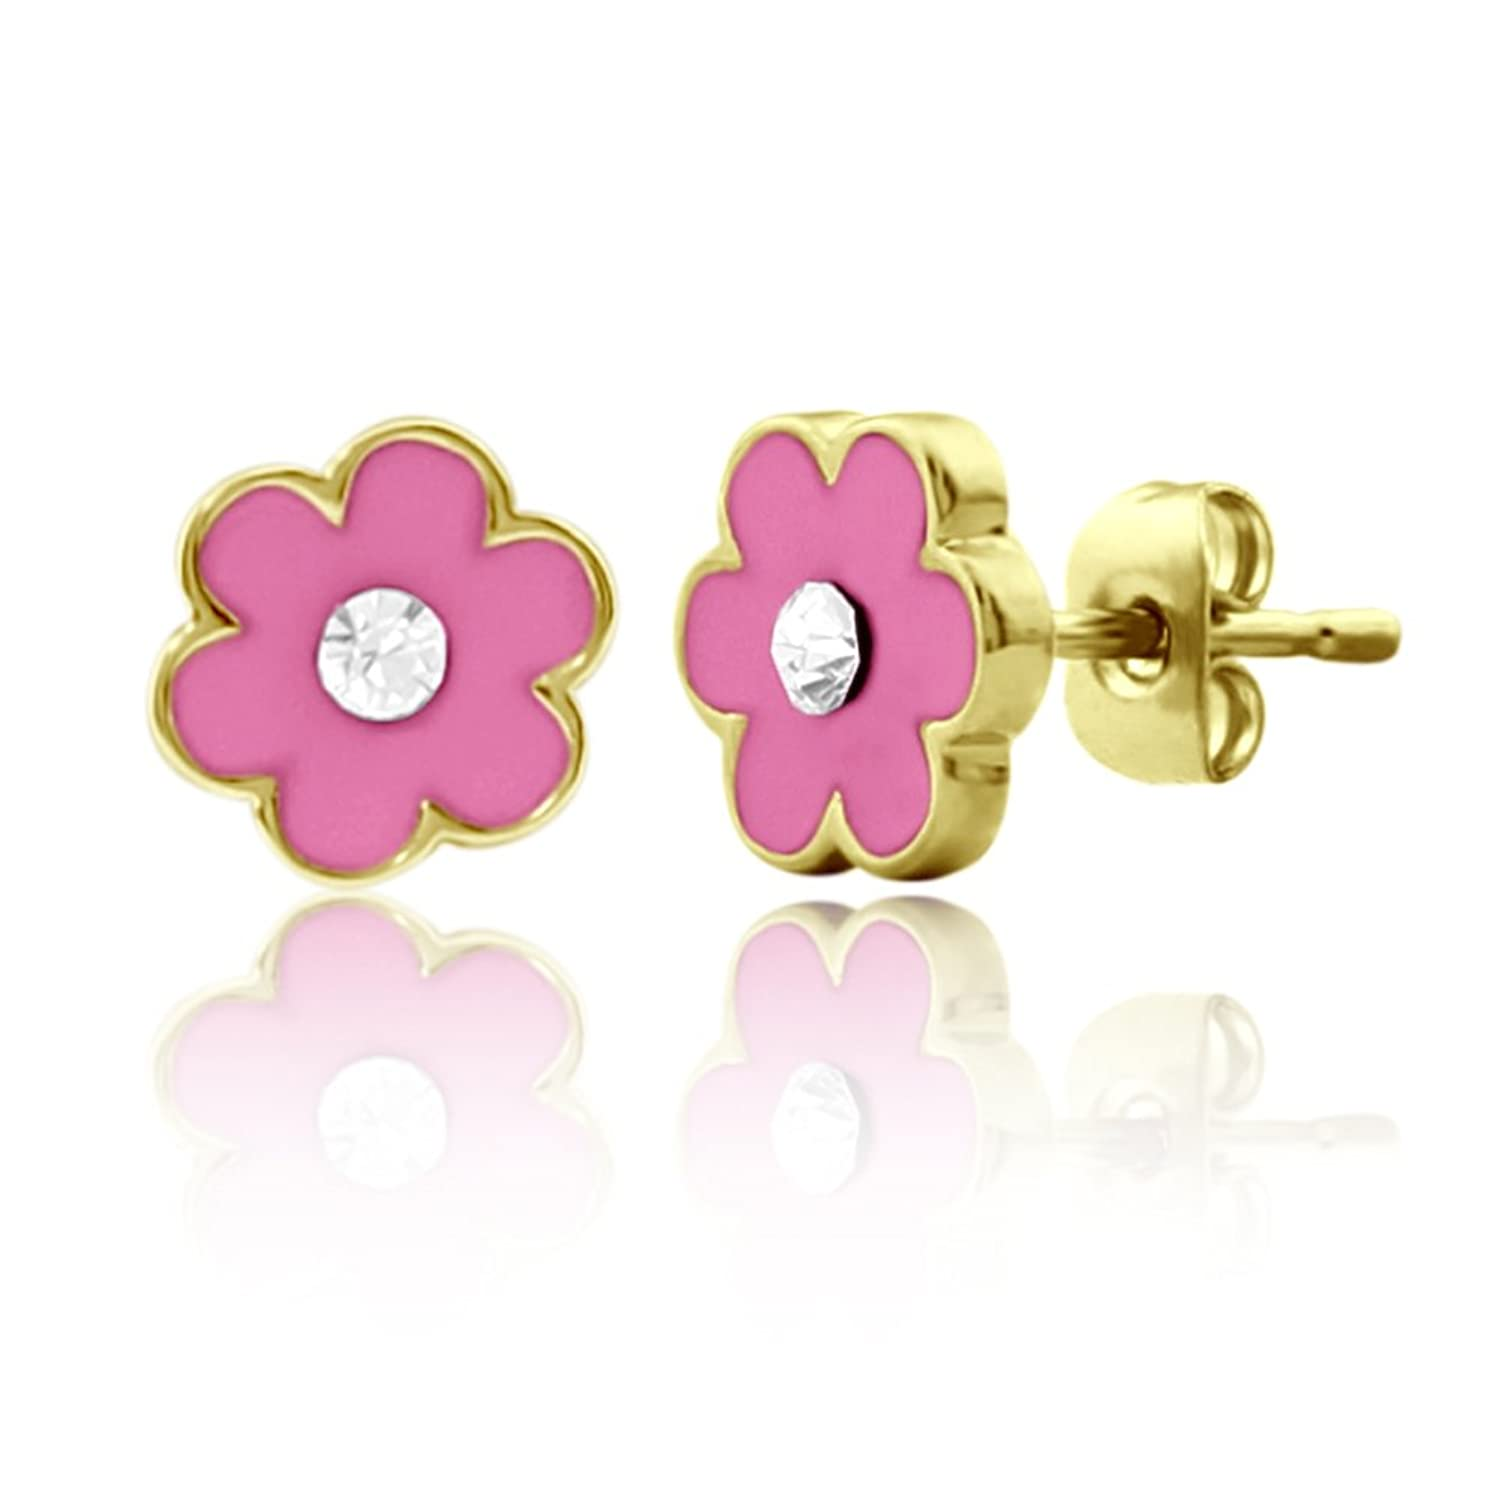 only flauntandfun big rs enamel at earrings products stud buy flower for